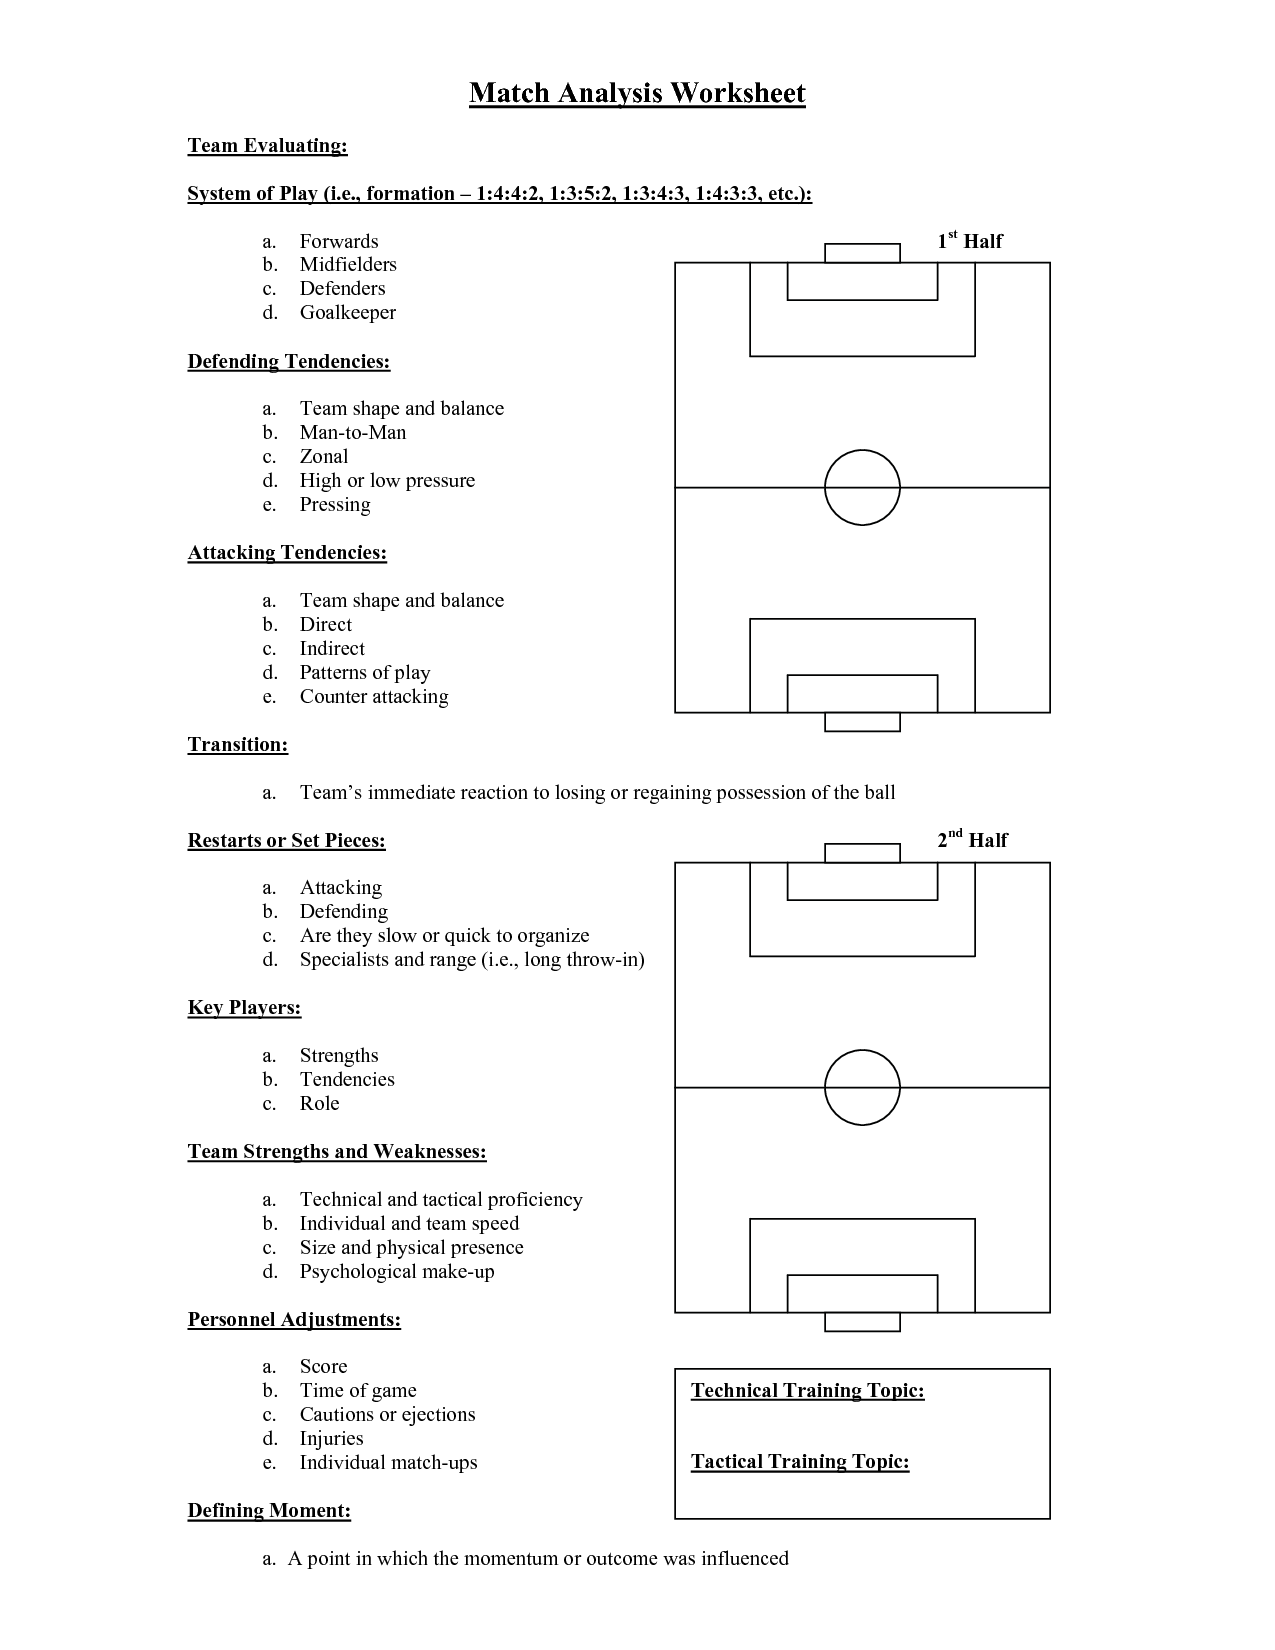 Matching Worksheet Template